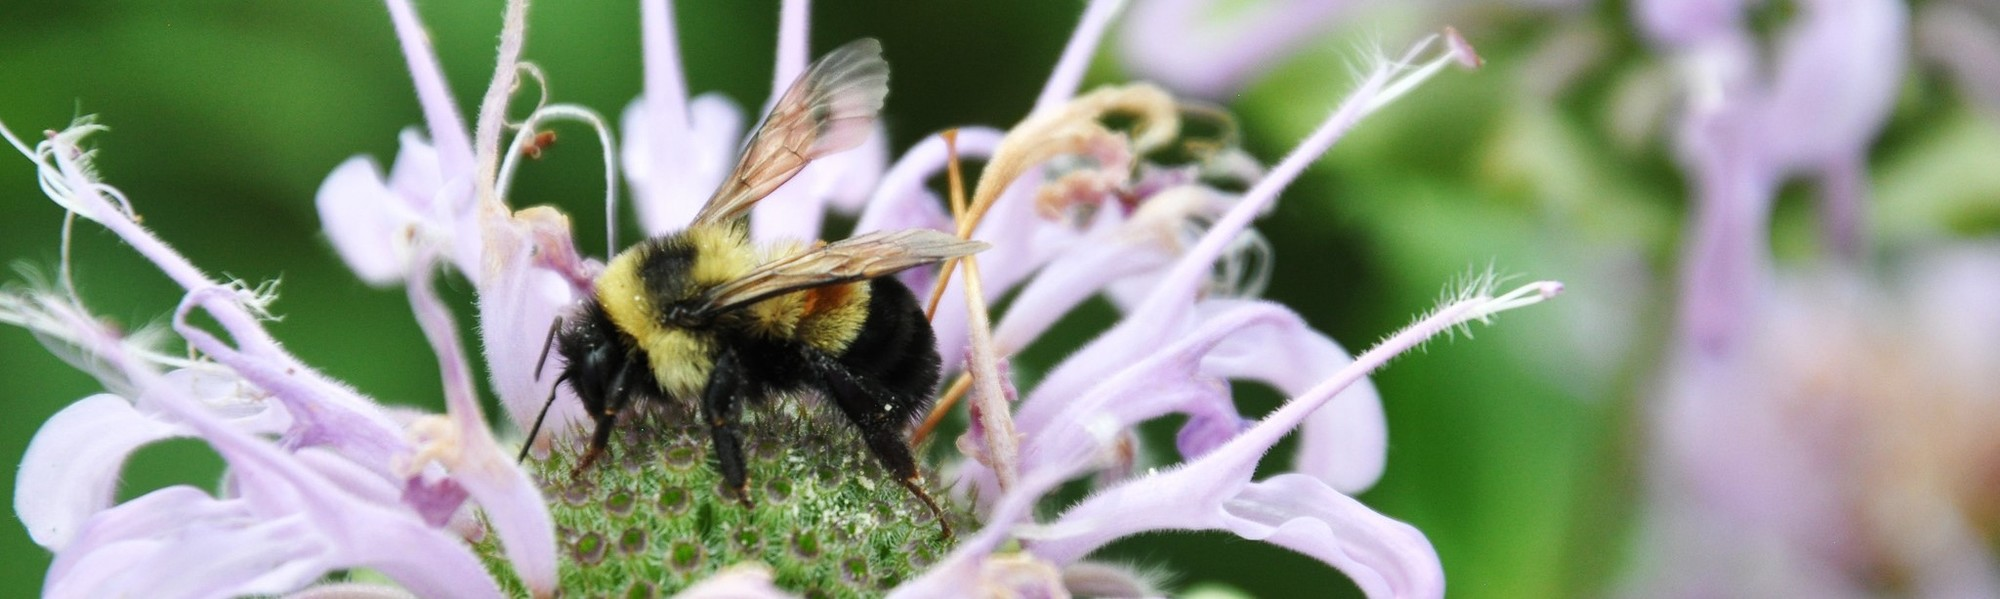 Rusty patched bumble bee on bee balm, by Jill Utrup/USFWS